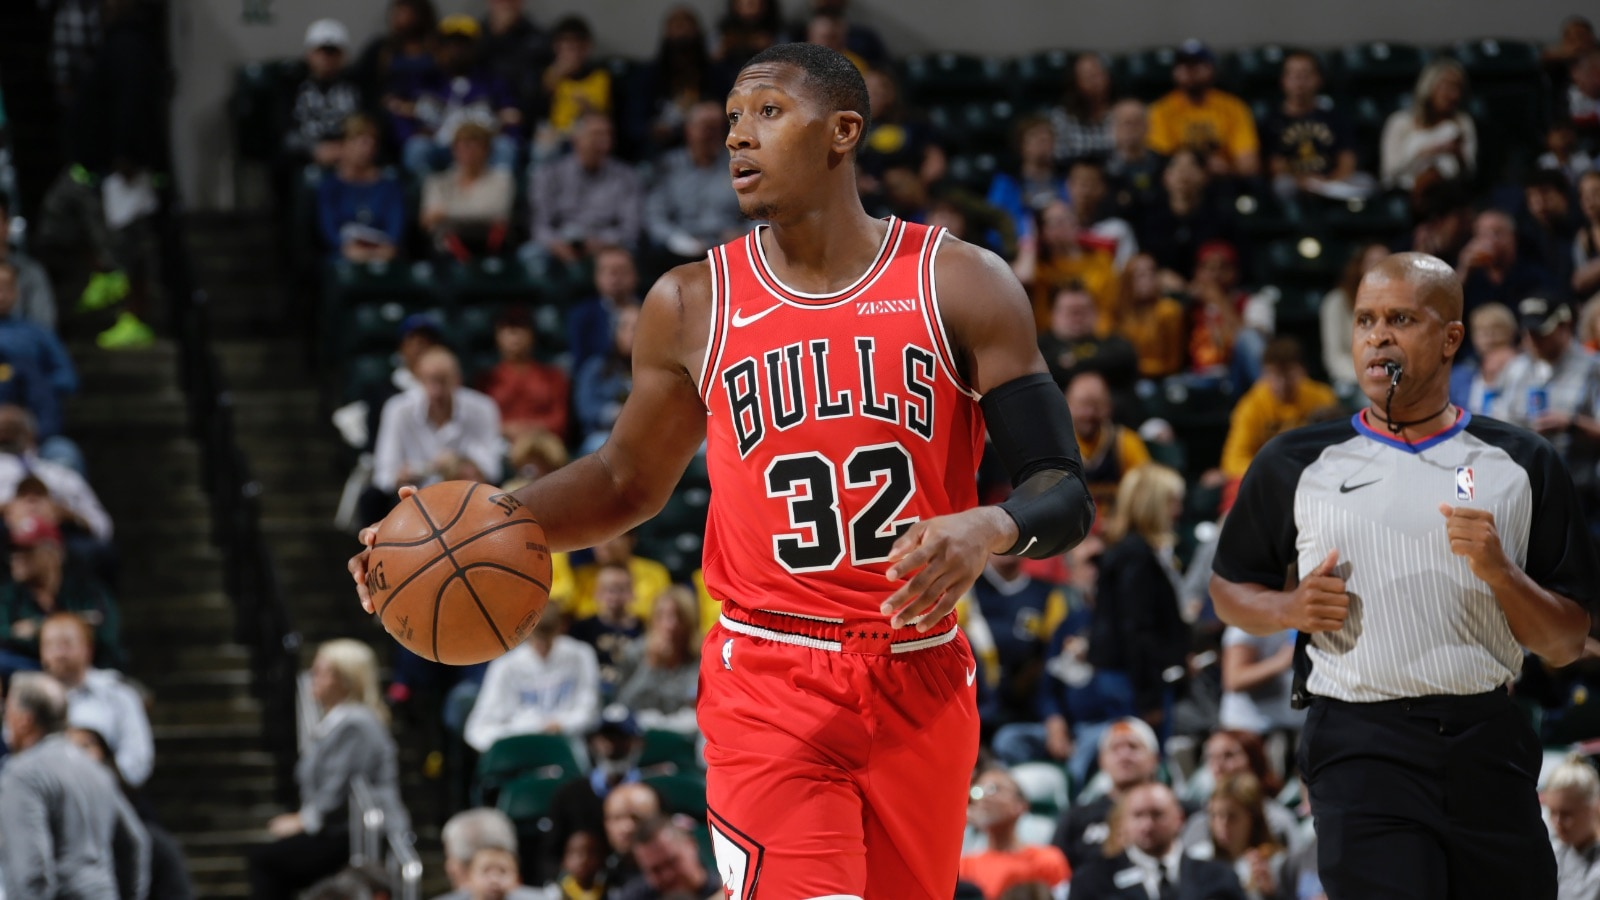 Kris Dunn dribbles the ball up the court